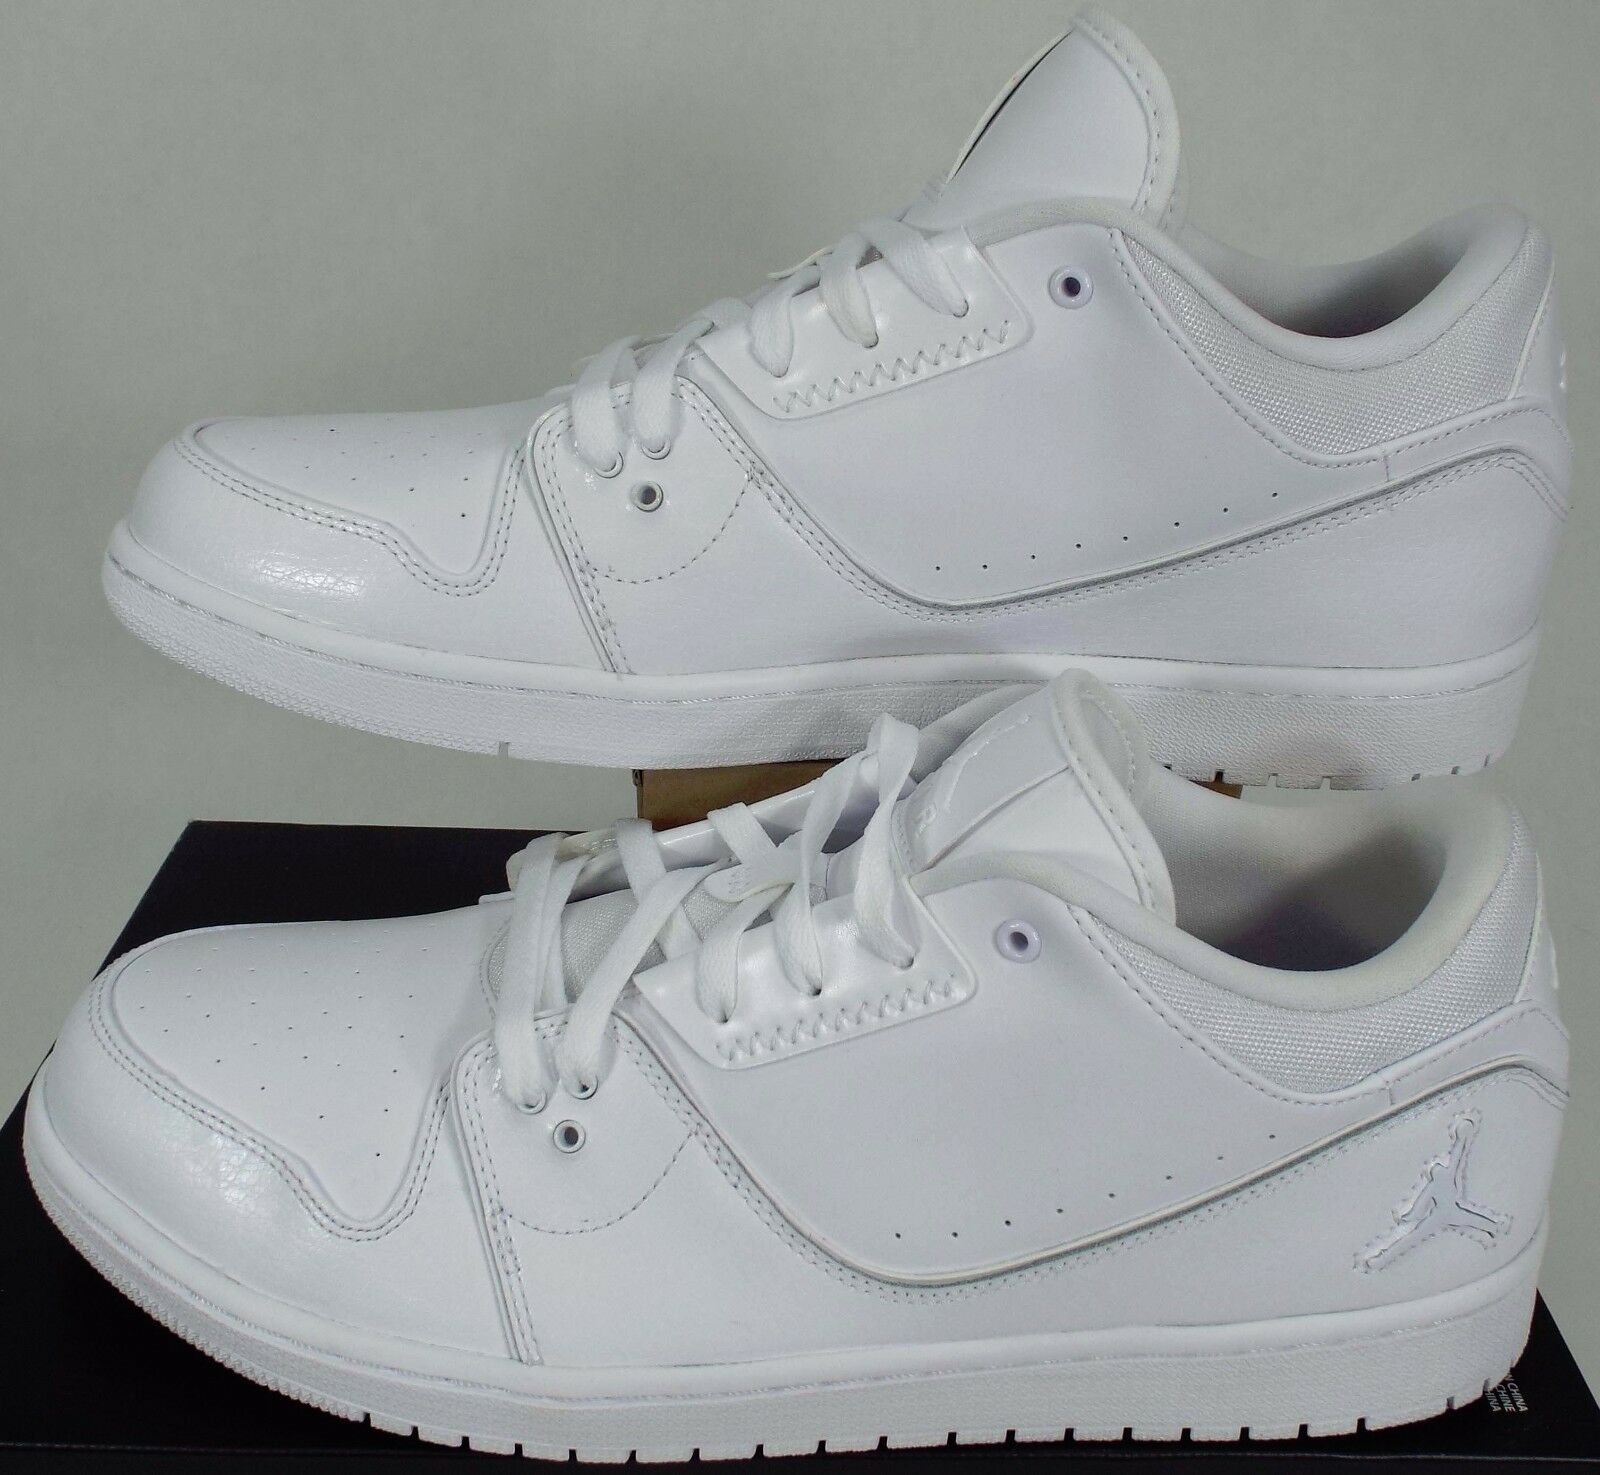 New Mens 14 NIKE Air Jordan 1 Flight 2 Low White Leather shoes  95 654465-120